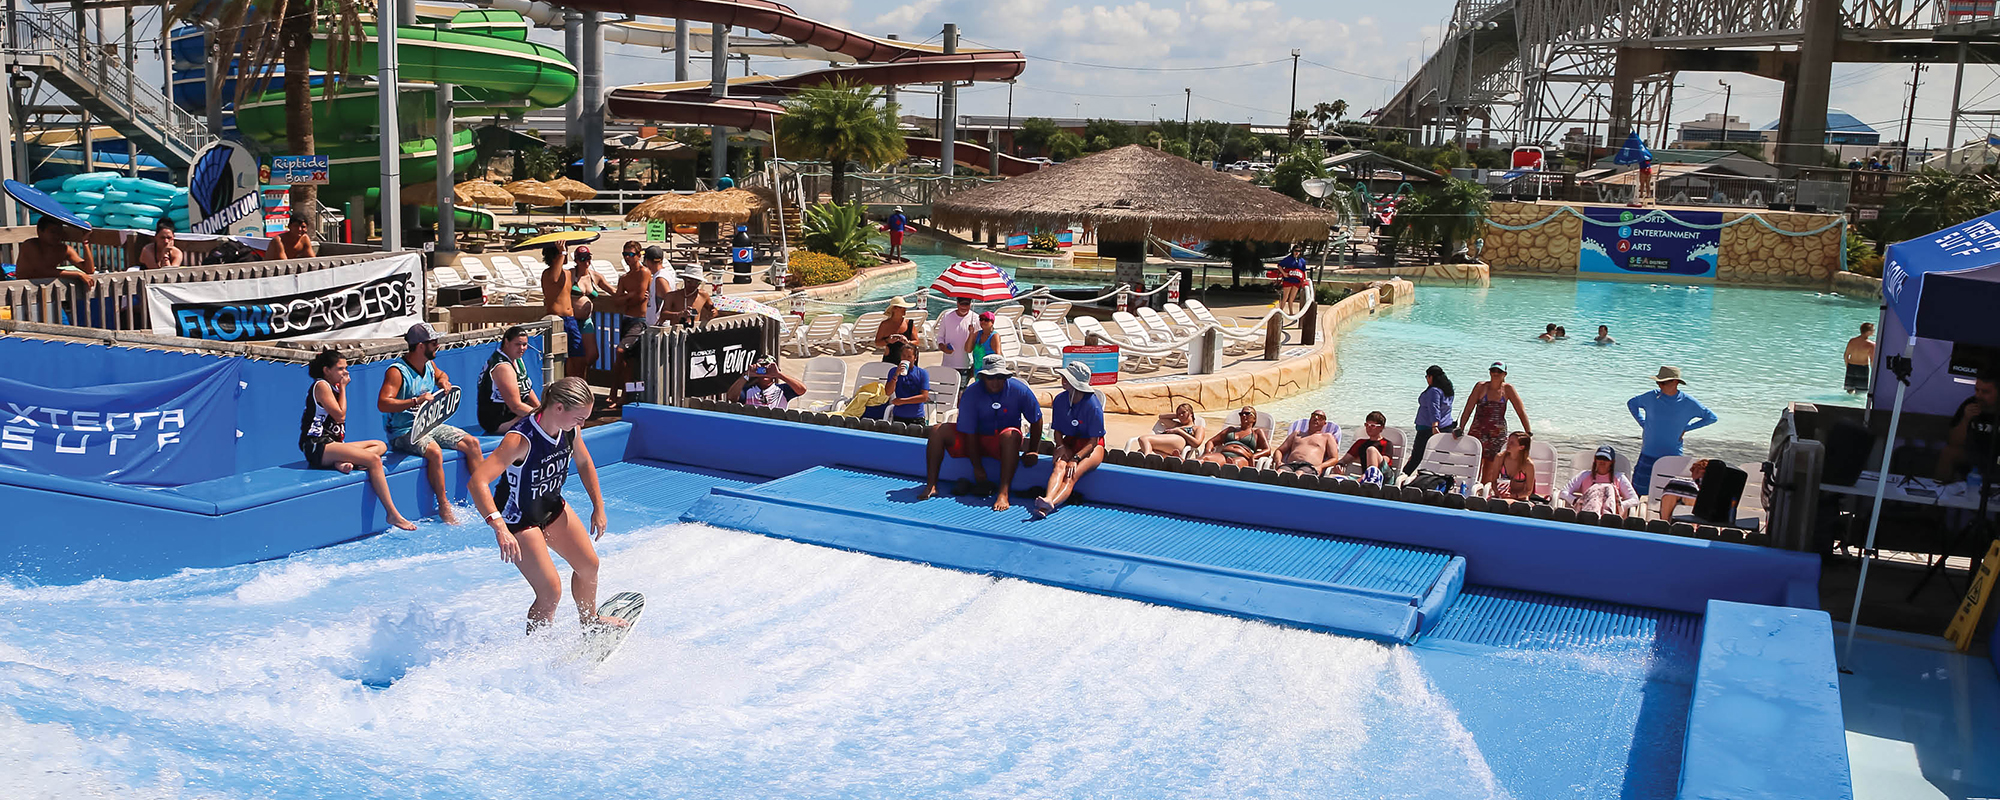 Girl surfing on the flowrider with people watching around it and slides and a pool in a background